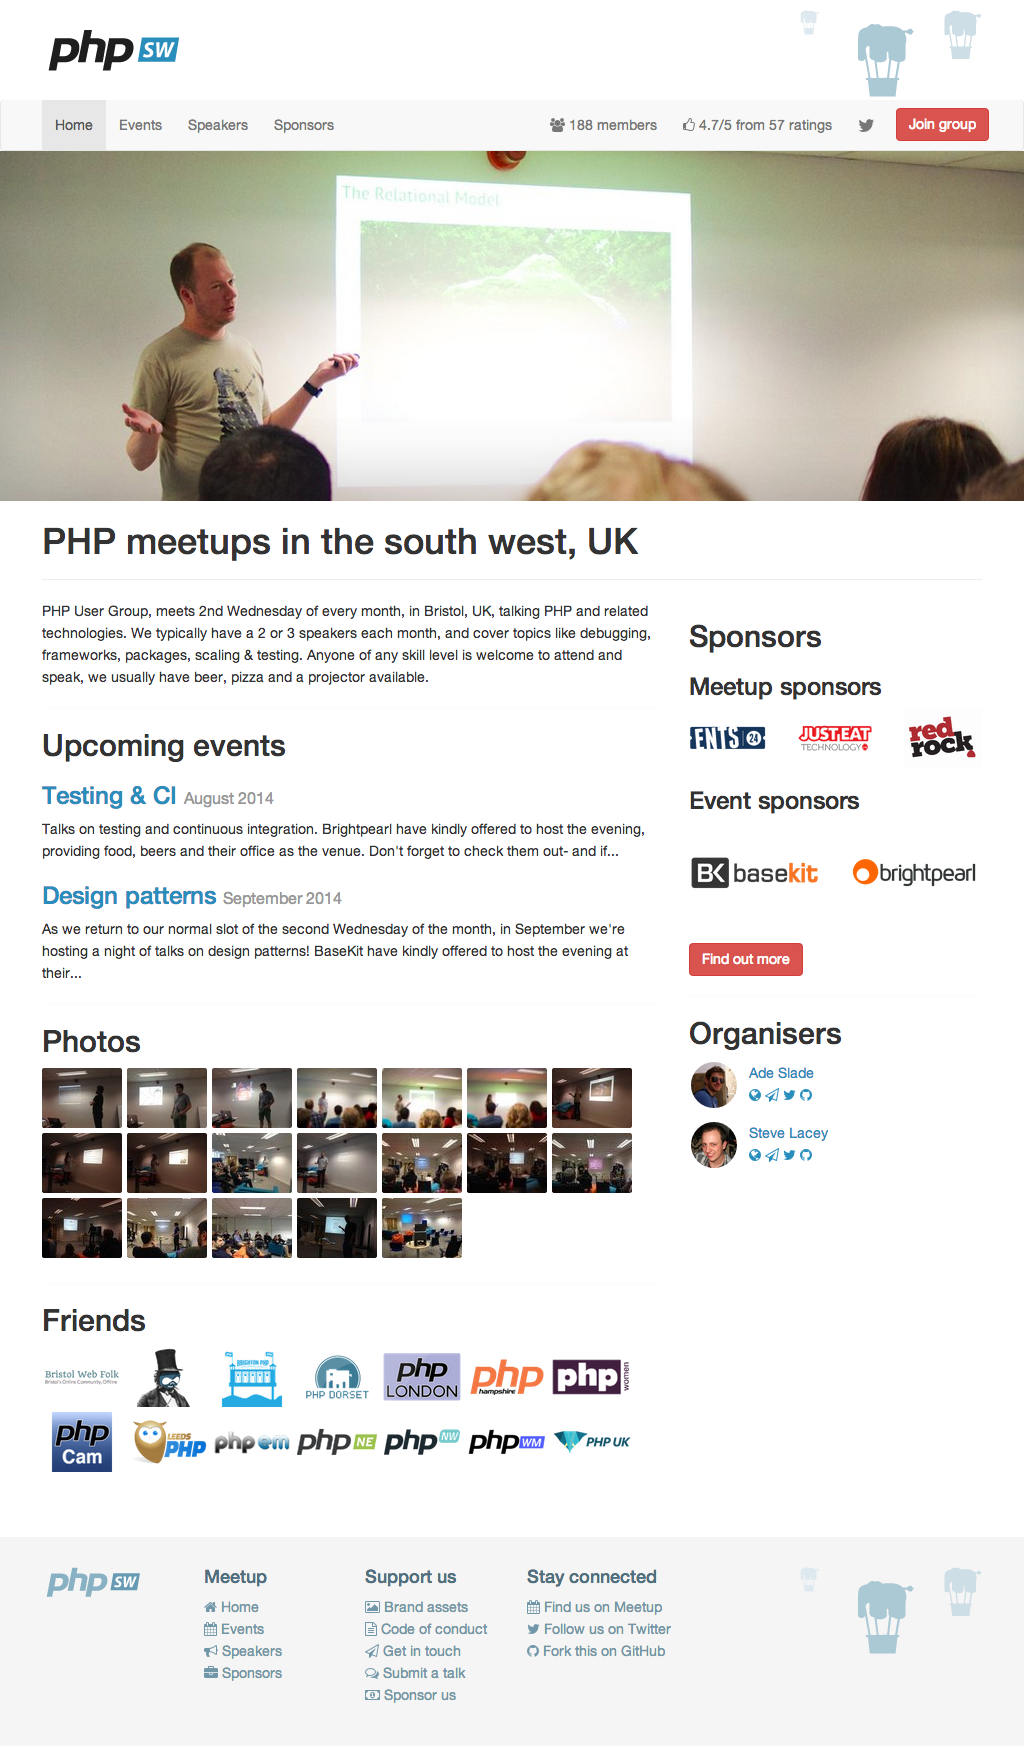 PHP South West UK